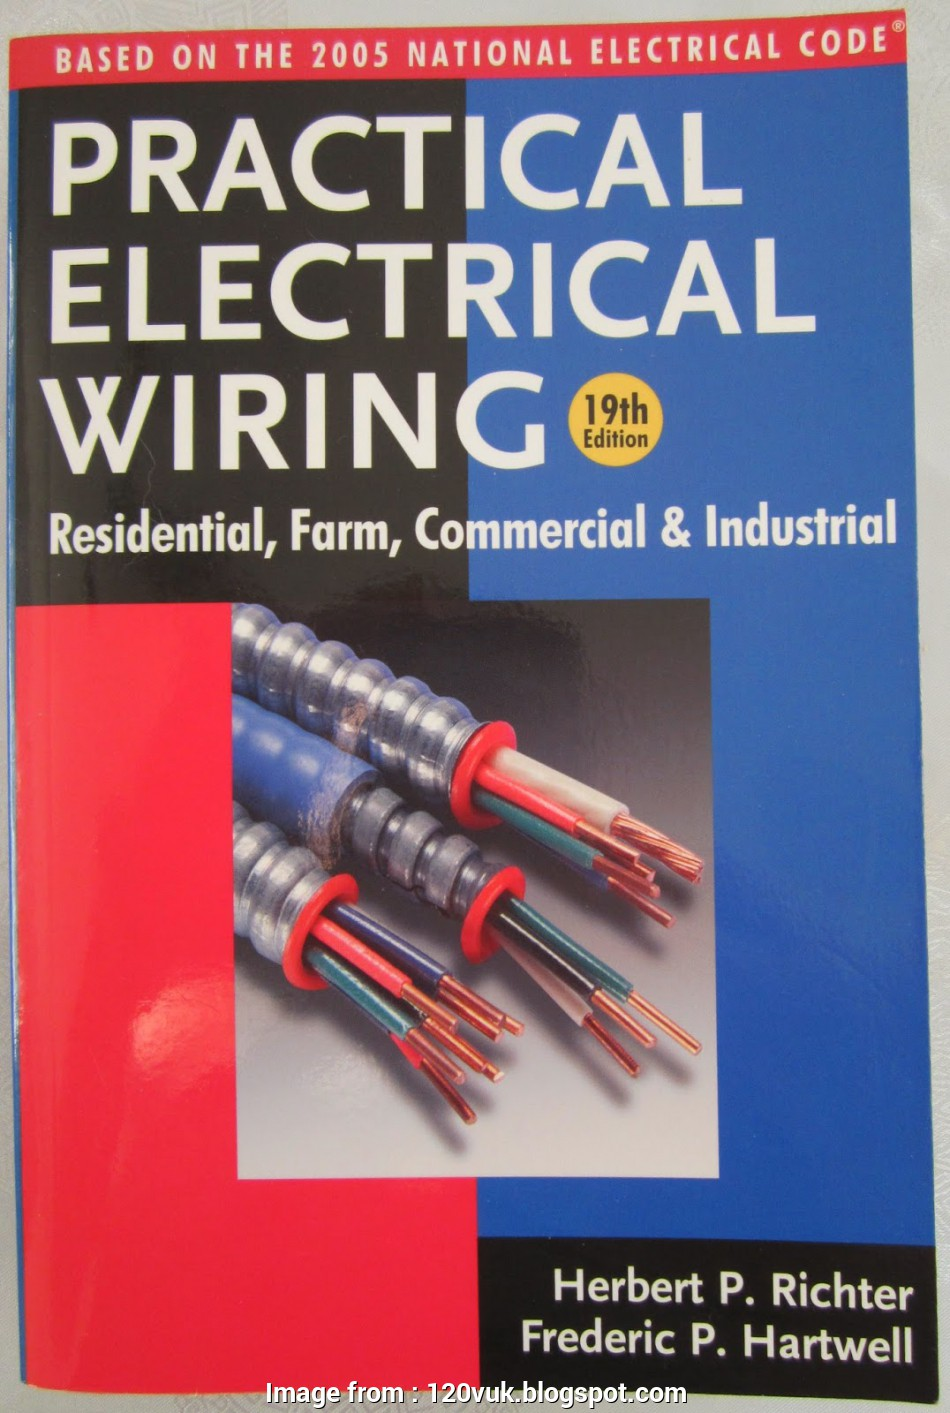 electrical wiring residential 19th edition review questions From, back cover: